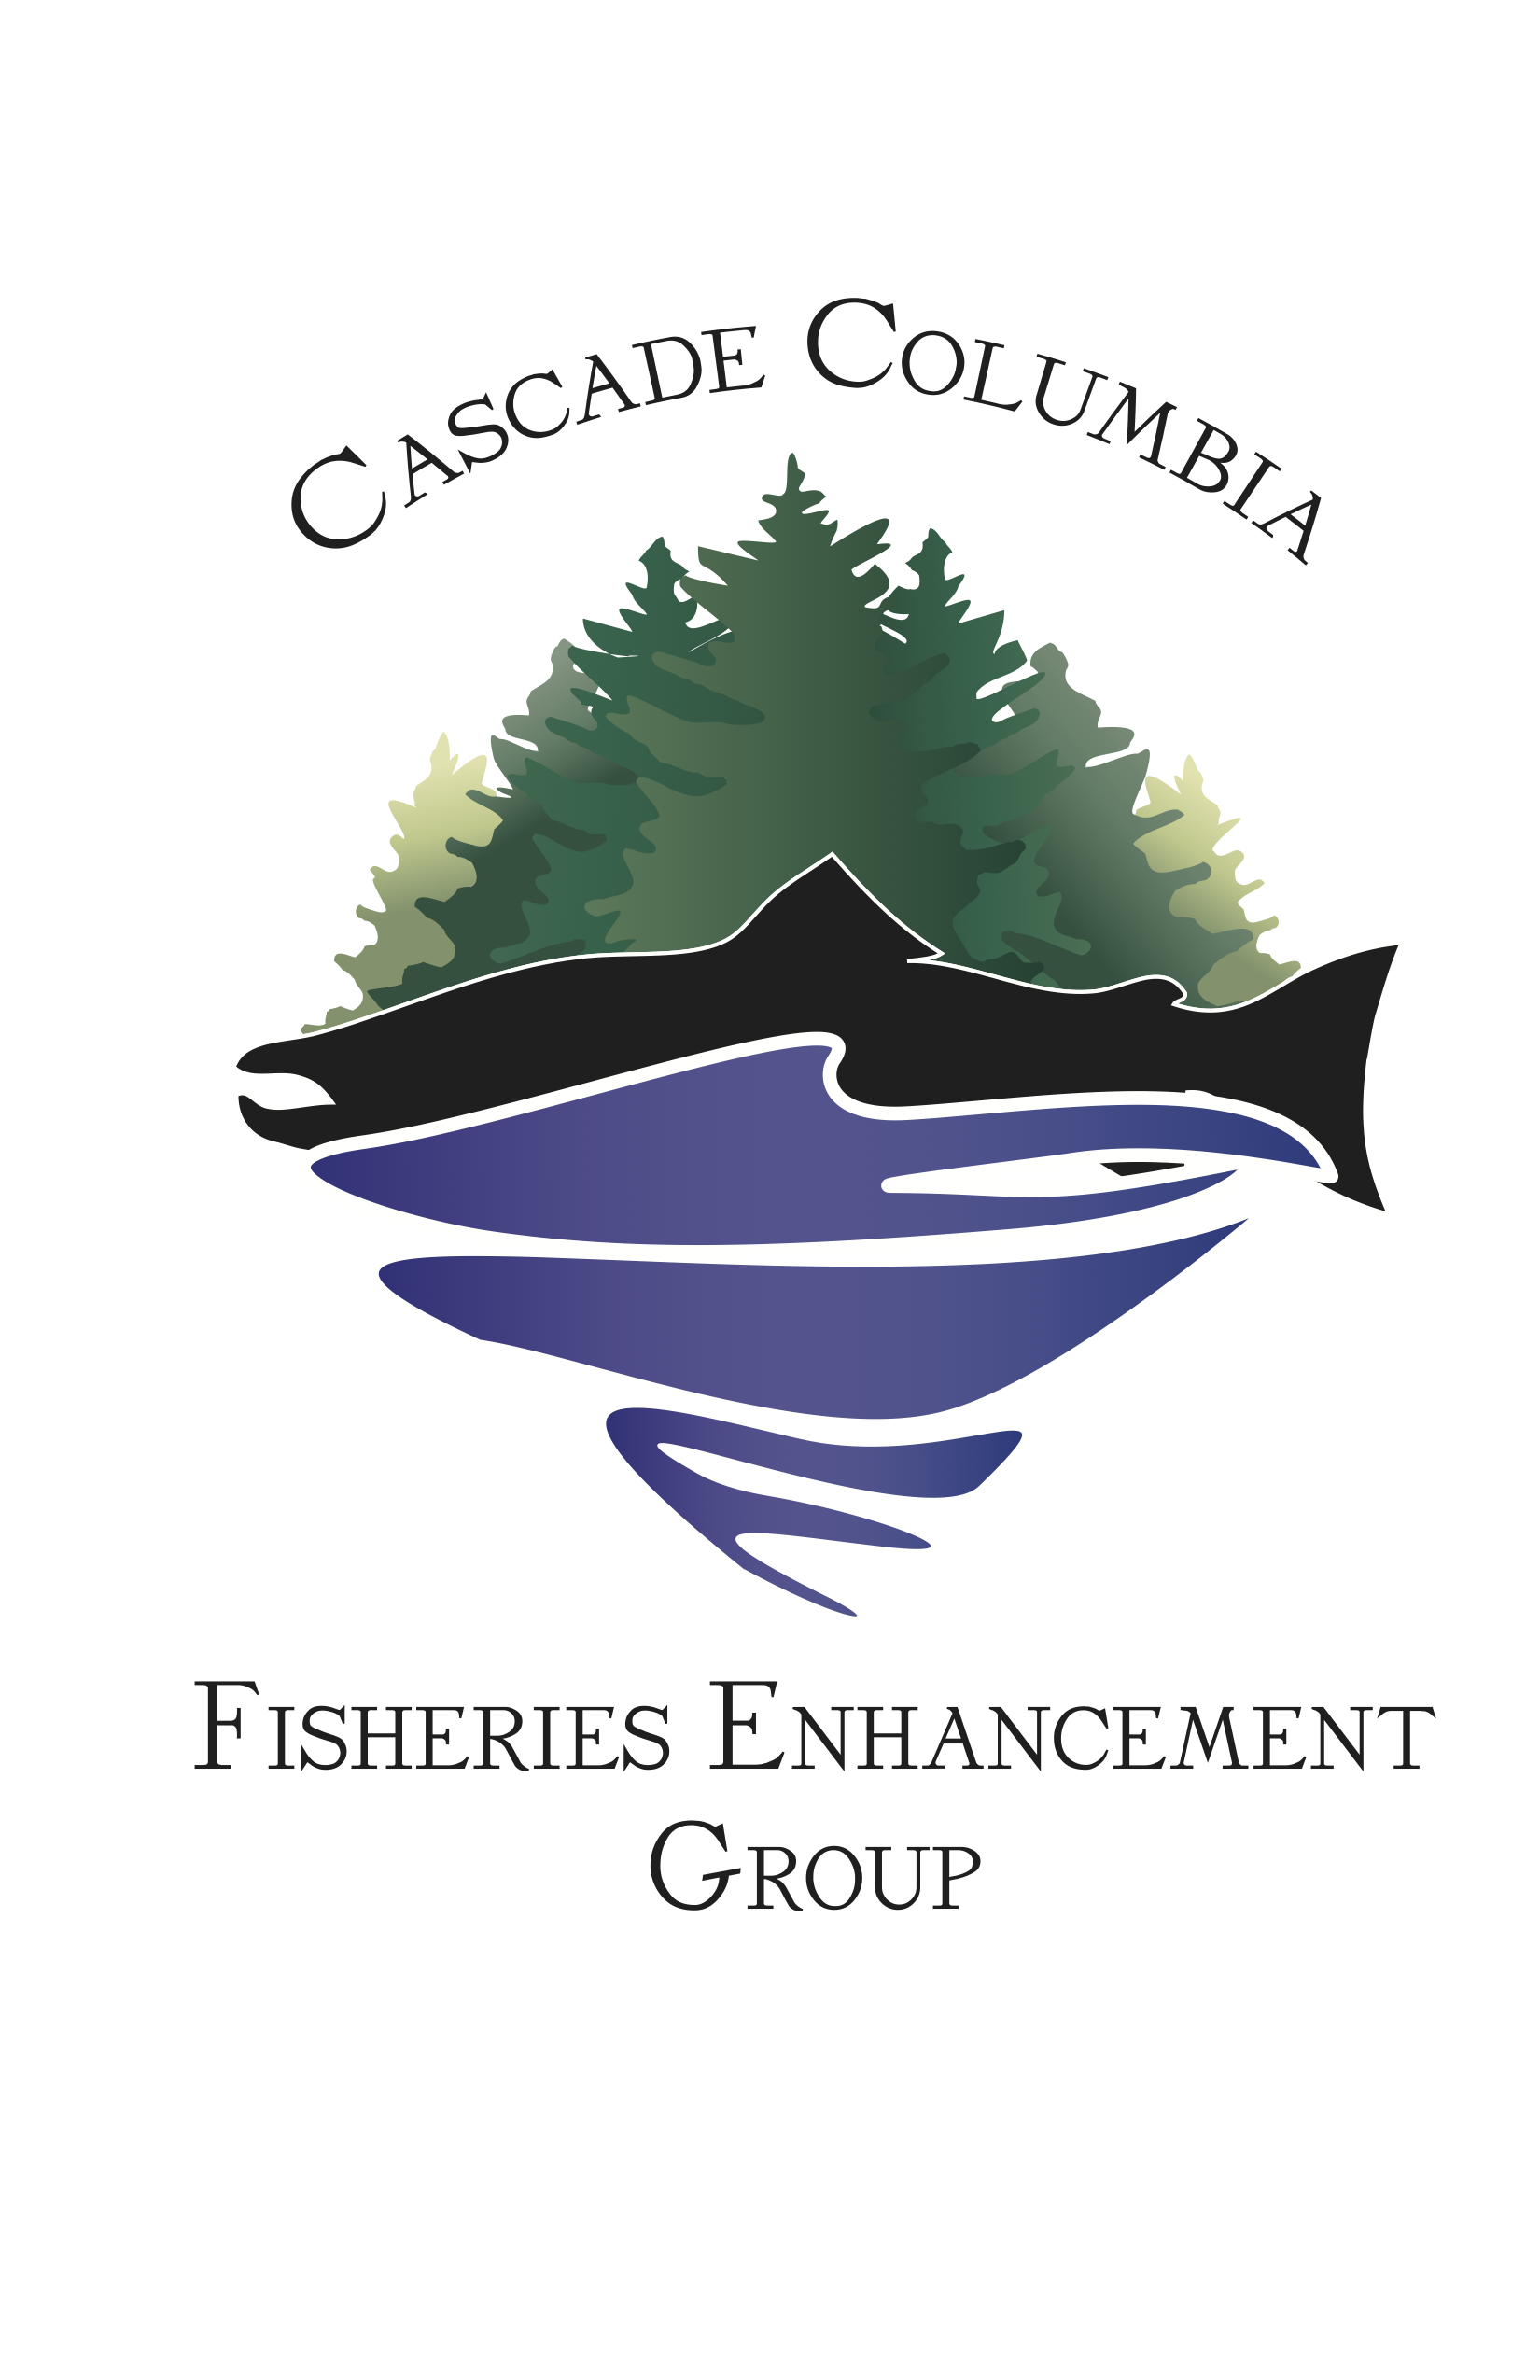 cascade columbia fisheries enhancement group.png